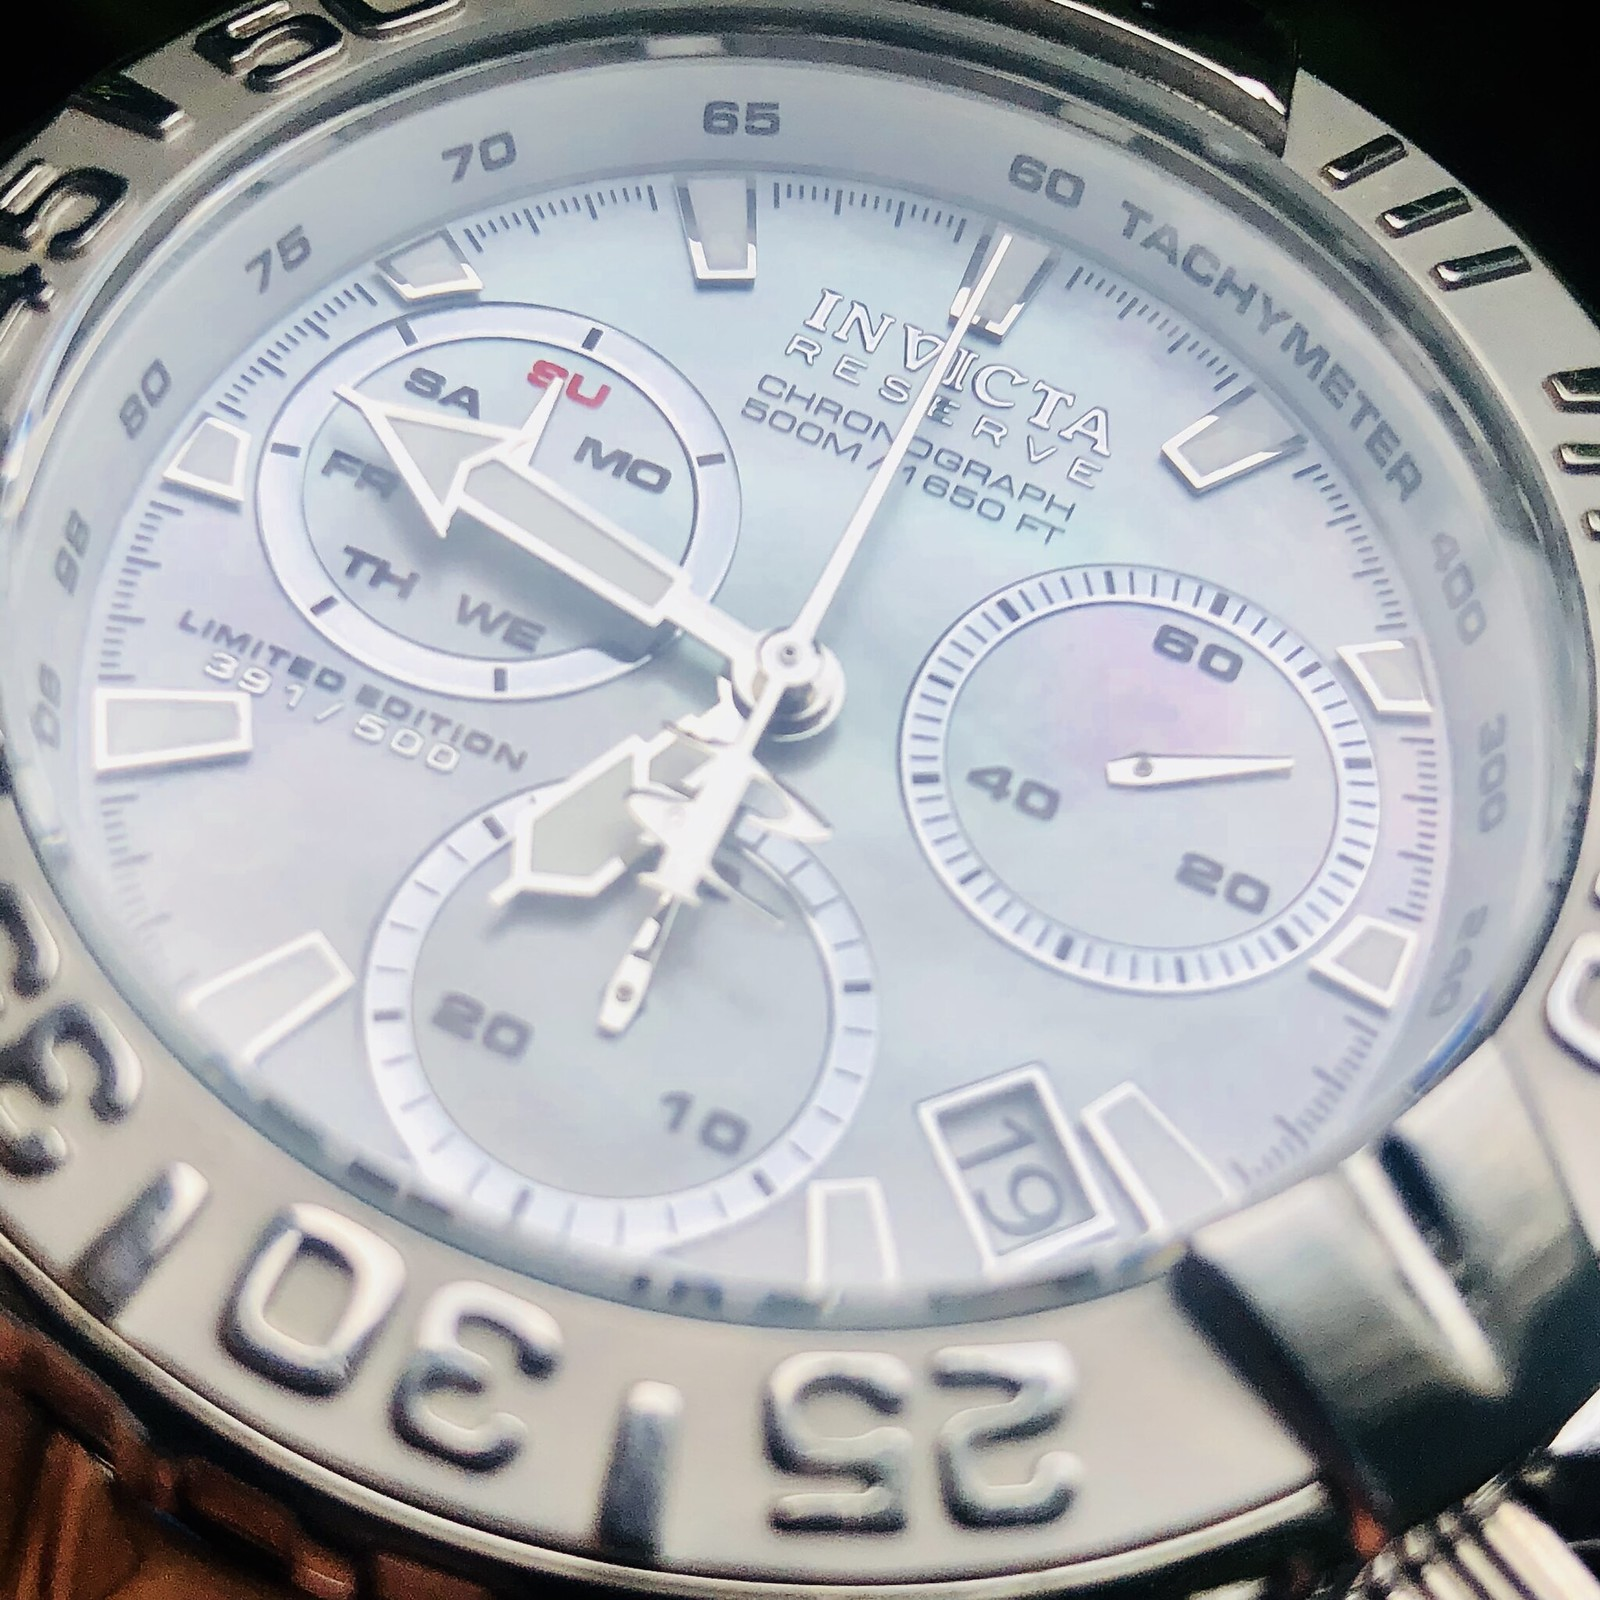 Opinion invicta pro diver is a better purchase than a rolex submariner page 38 for Watches better than rolex